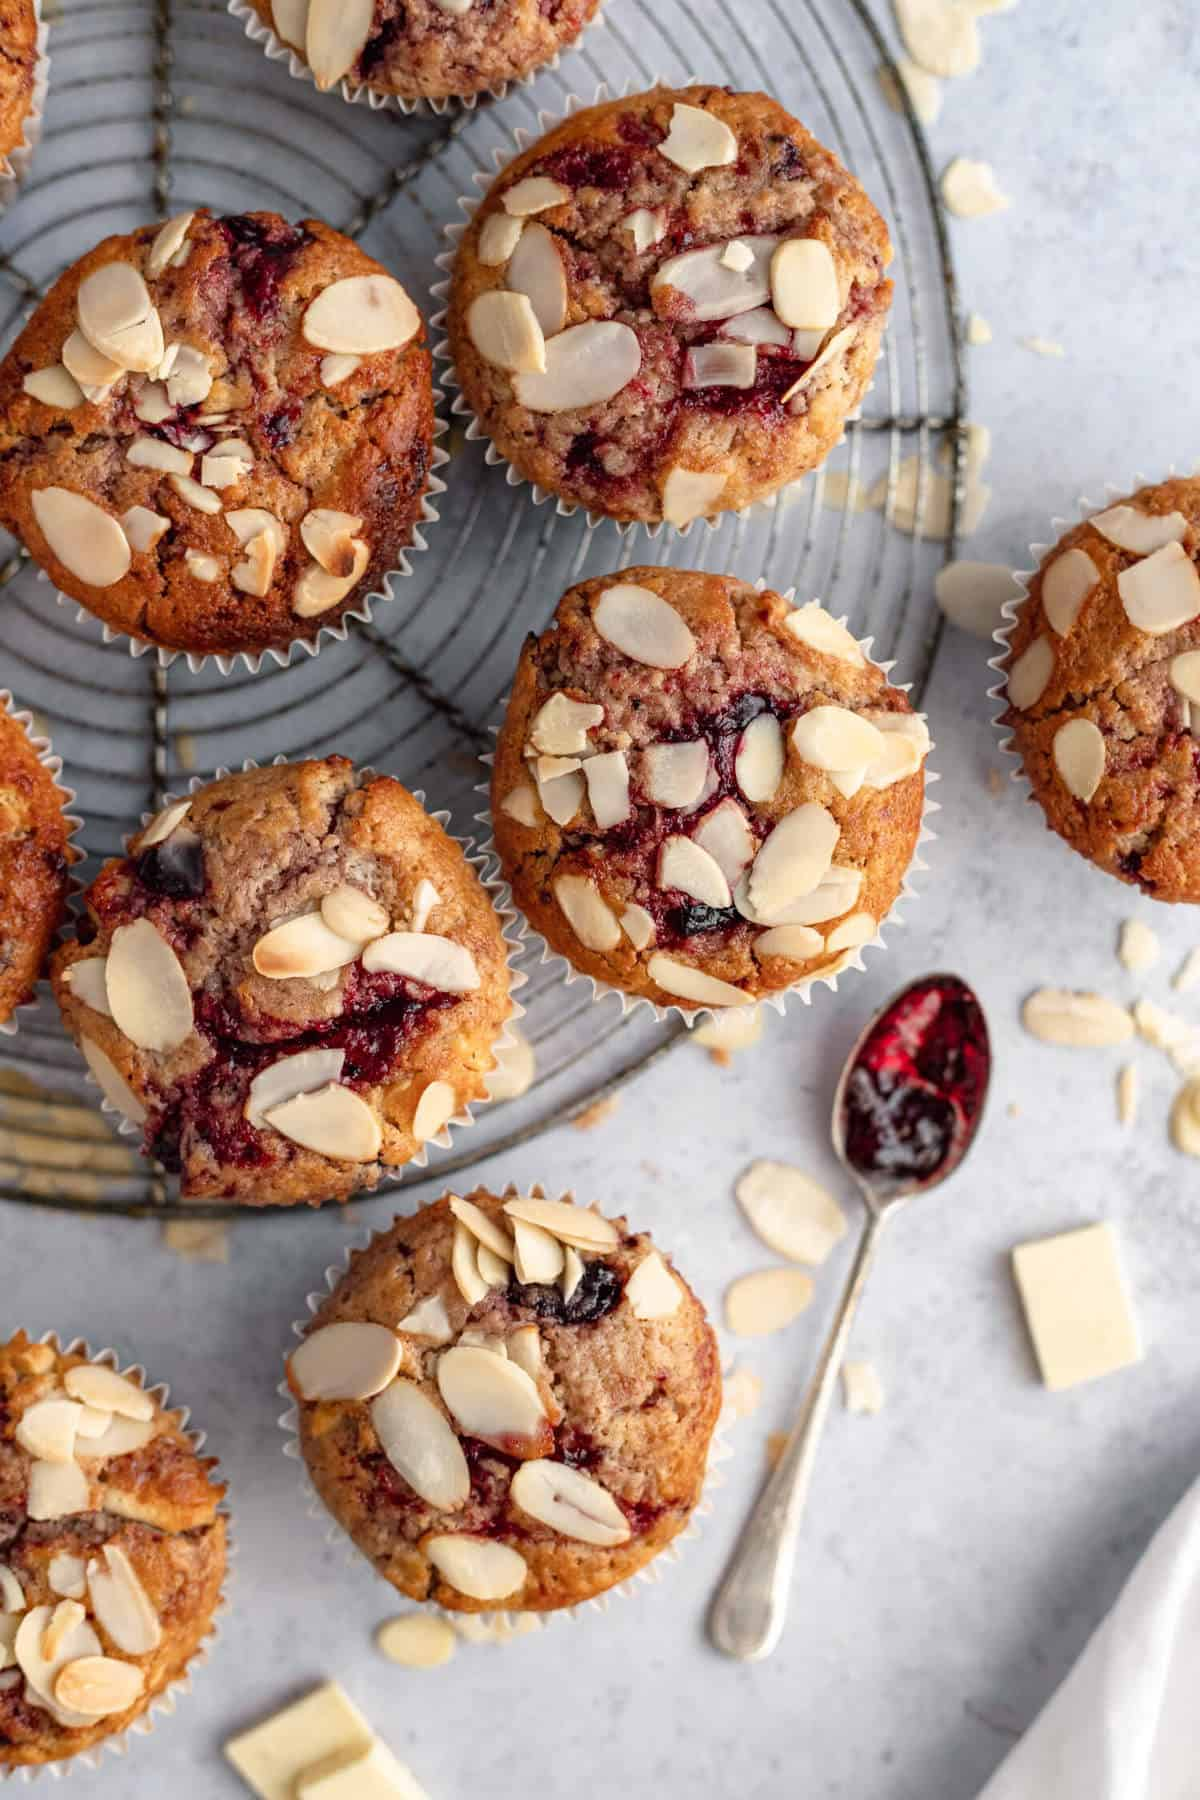 a few sourdough muffins on a cooling rack, a spoon with jam on it and some almonds and white chocolate scattered around